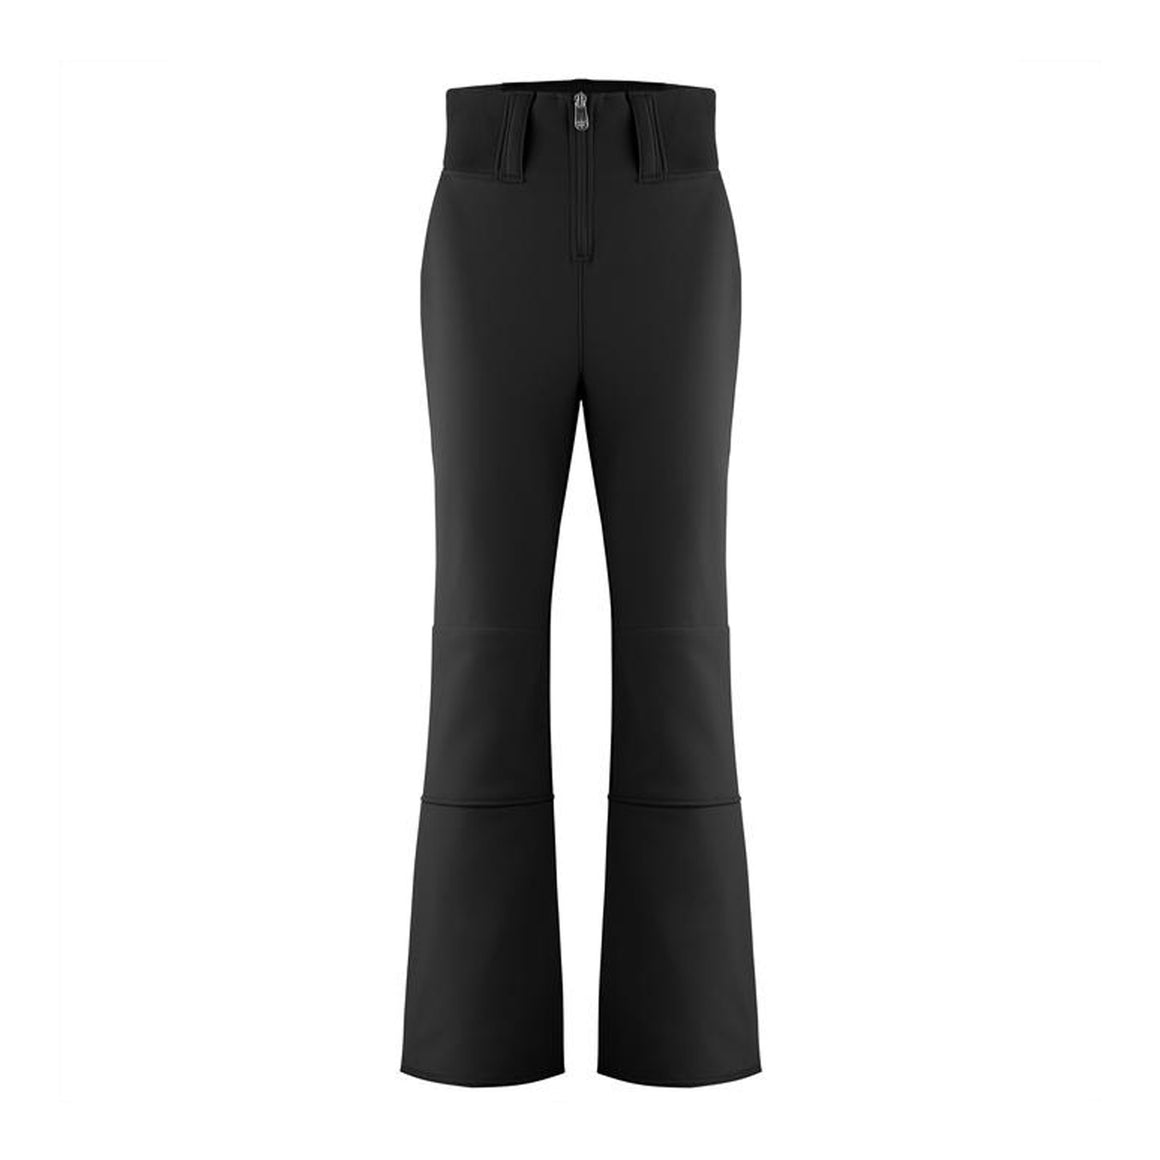 Softshell Ski Pant for Women in Black